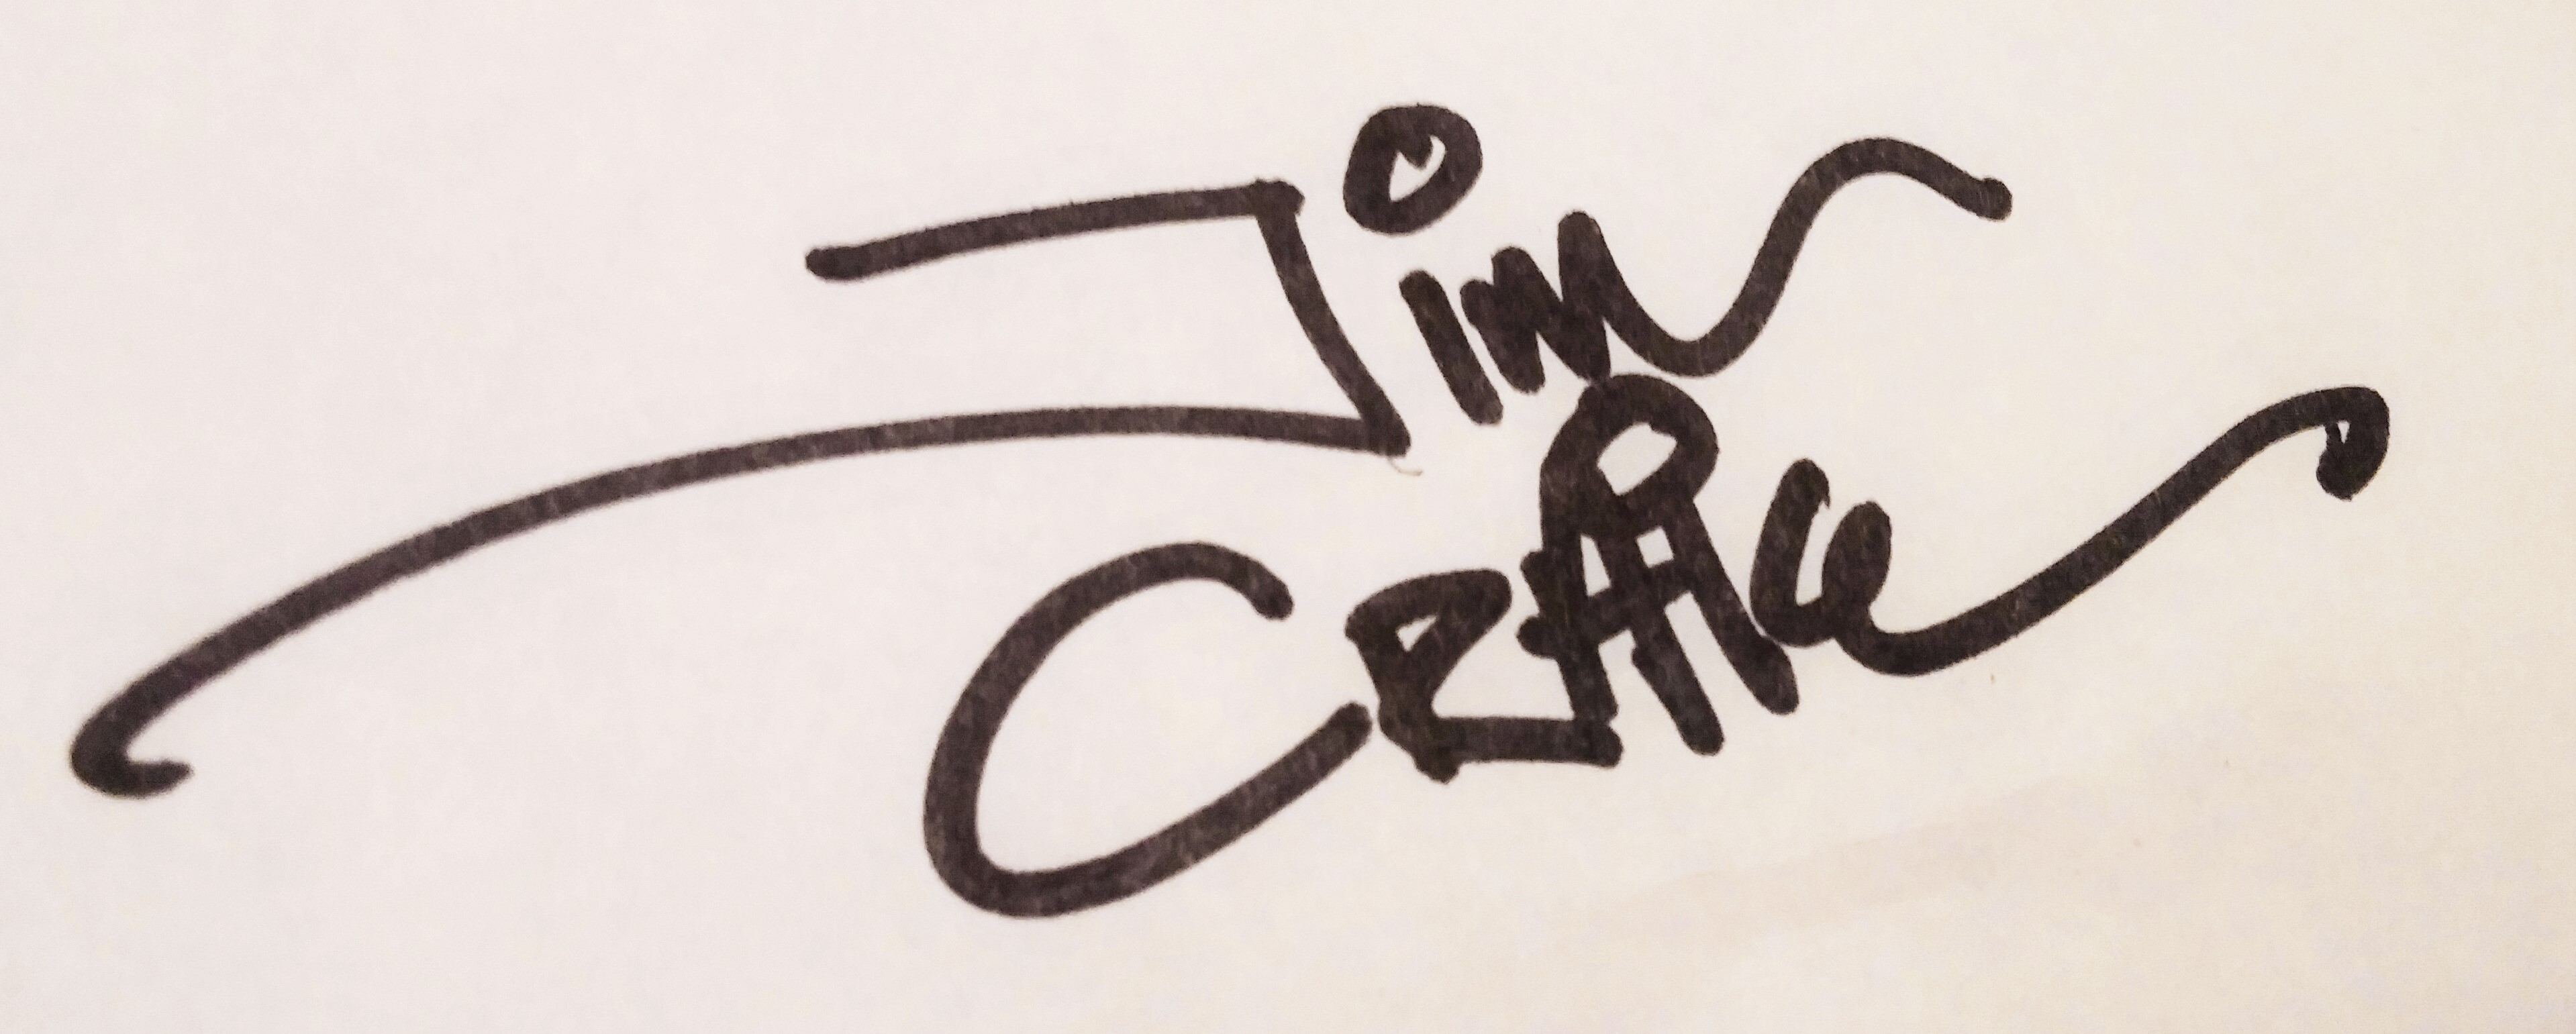 Jim Craig's Signature